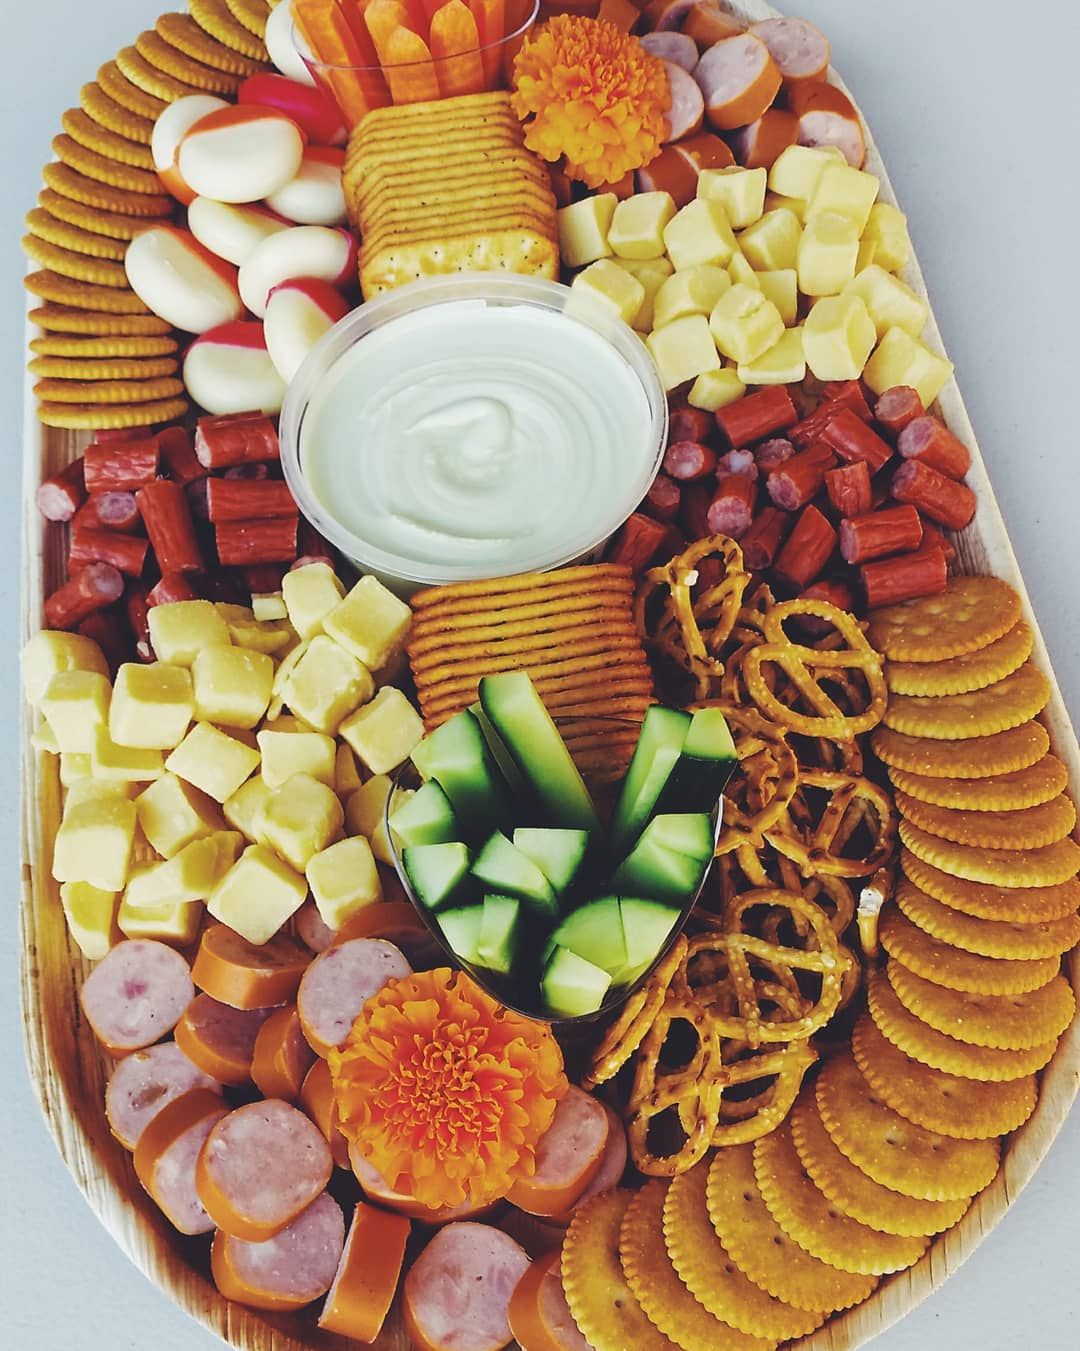 Hello Platters Sunshine Coast On Instagram We Have A New Look Children S Savoury Platter And It S Filled Kids Savory Kids Party Food Easy Party Food Platters